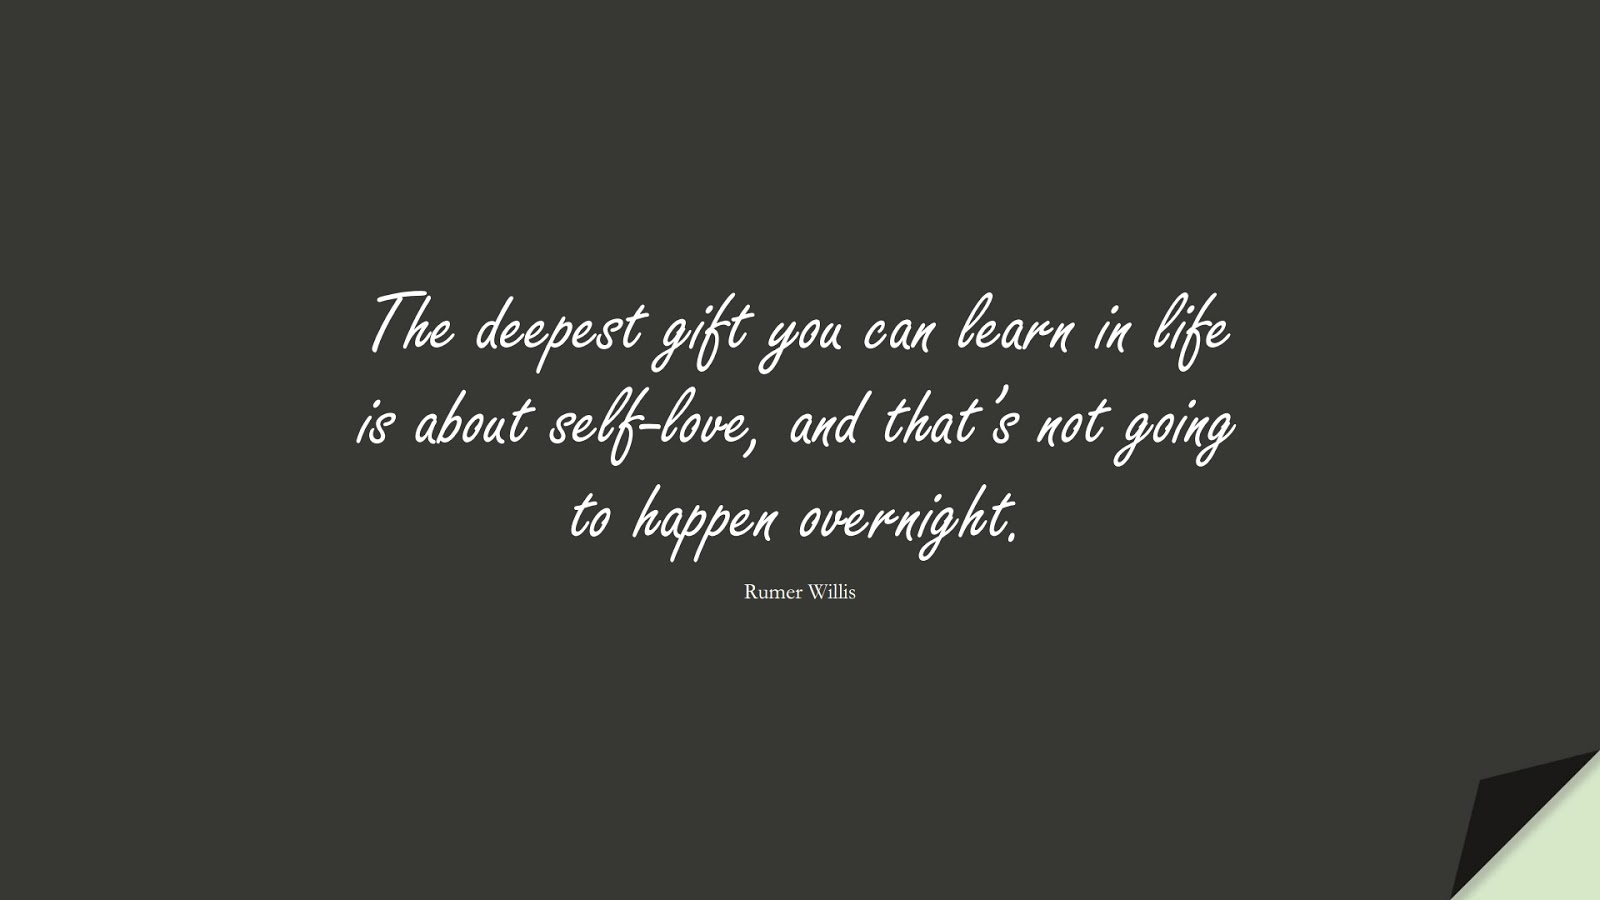 The deepest gift you can learn in life is about self-love, and that's not going to happen overnight. (Rumer Willis);  #InspirationalQuotes